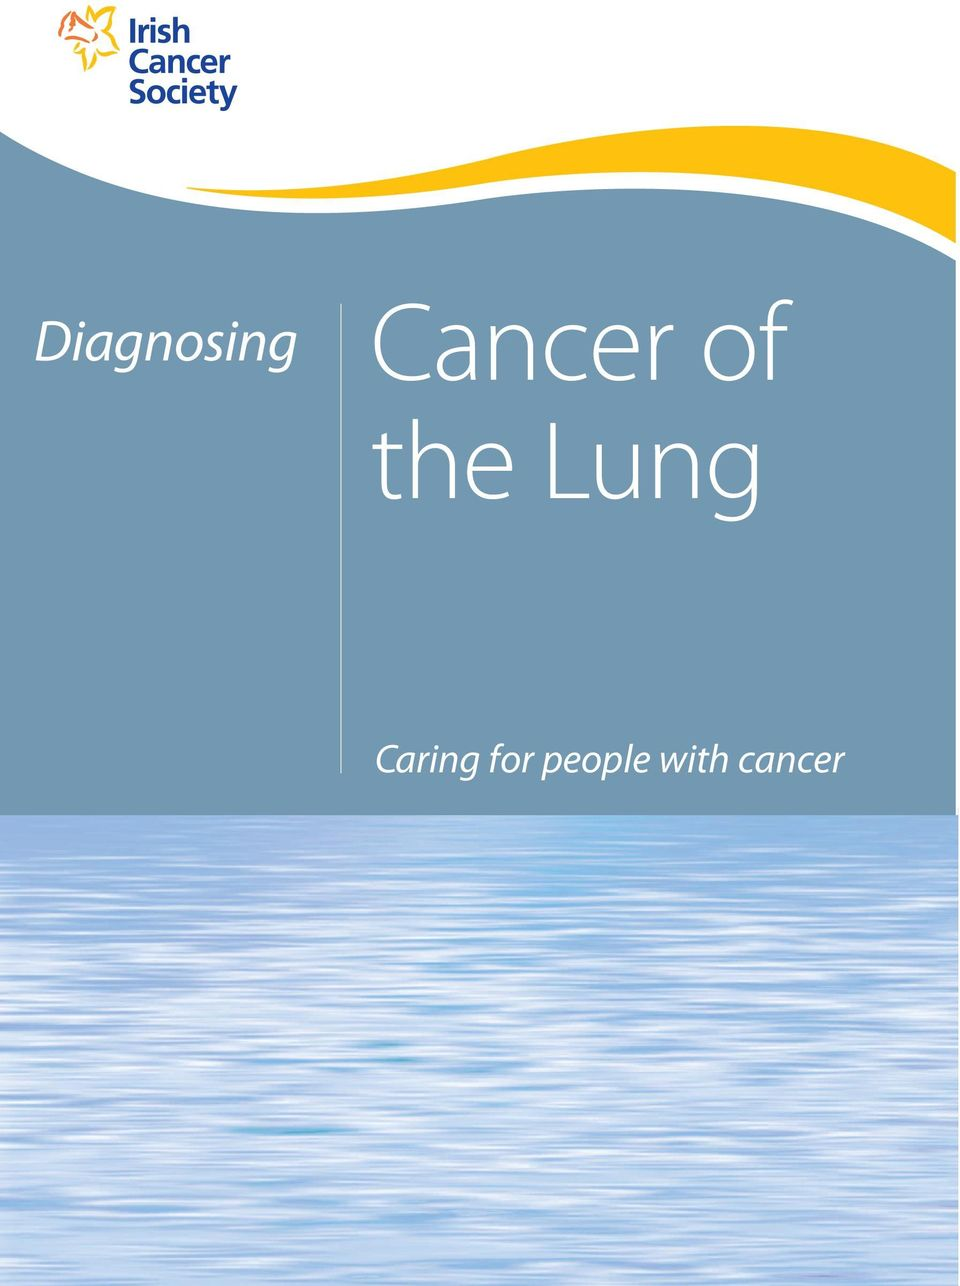 Lung Caring